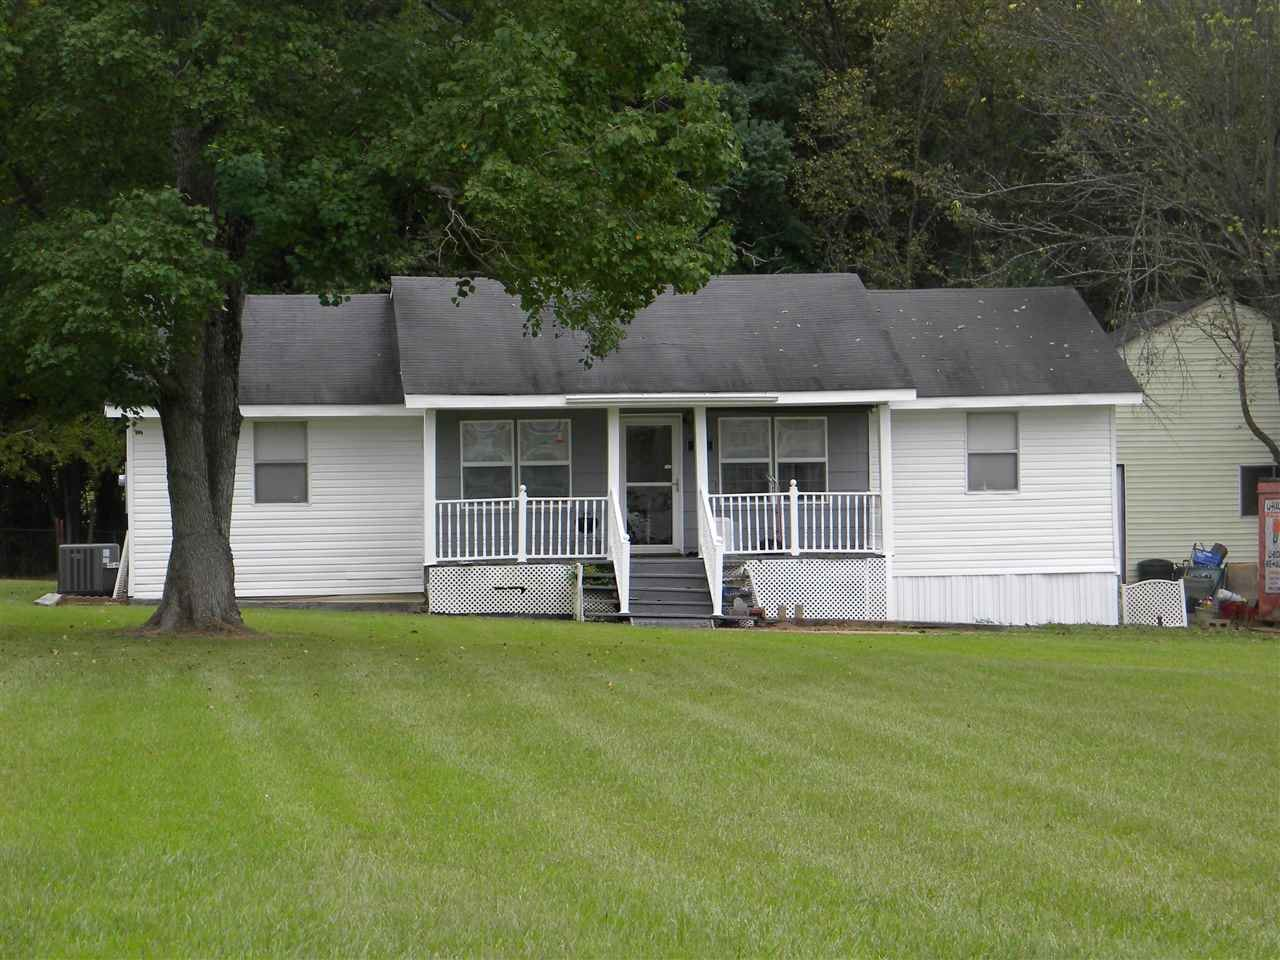 136 PEGGY DR, Florence, MS 39073 - MLS#: 344665